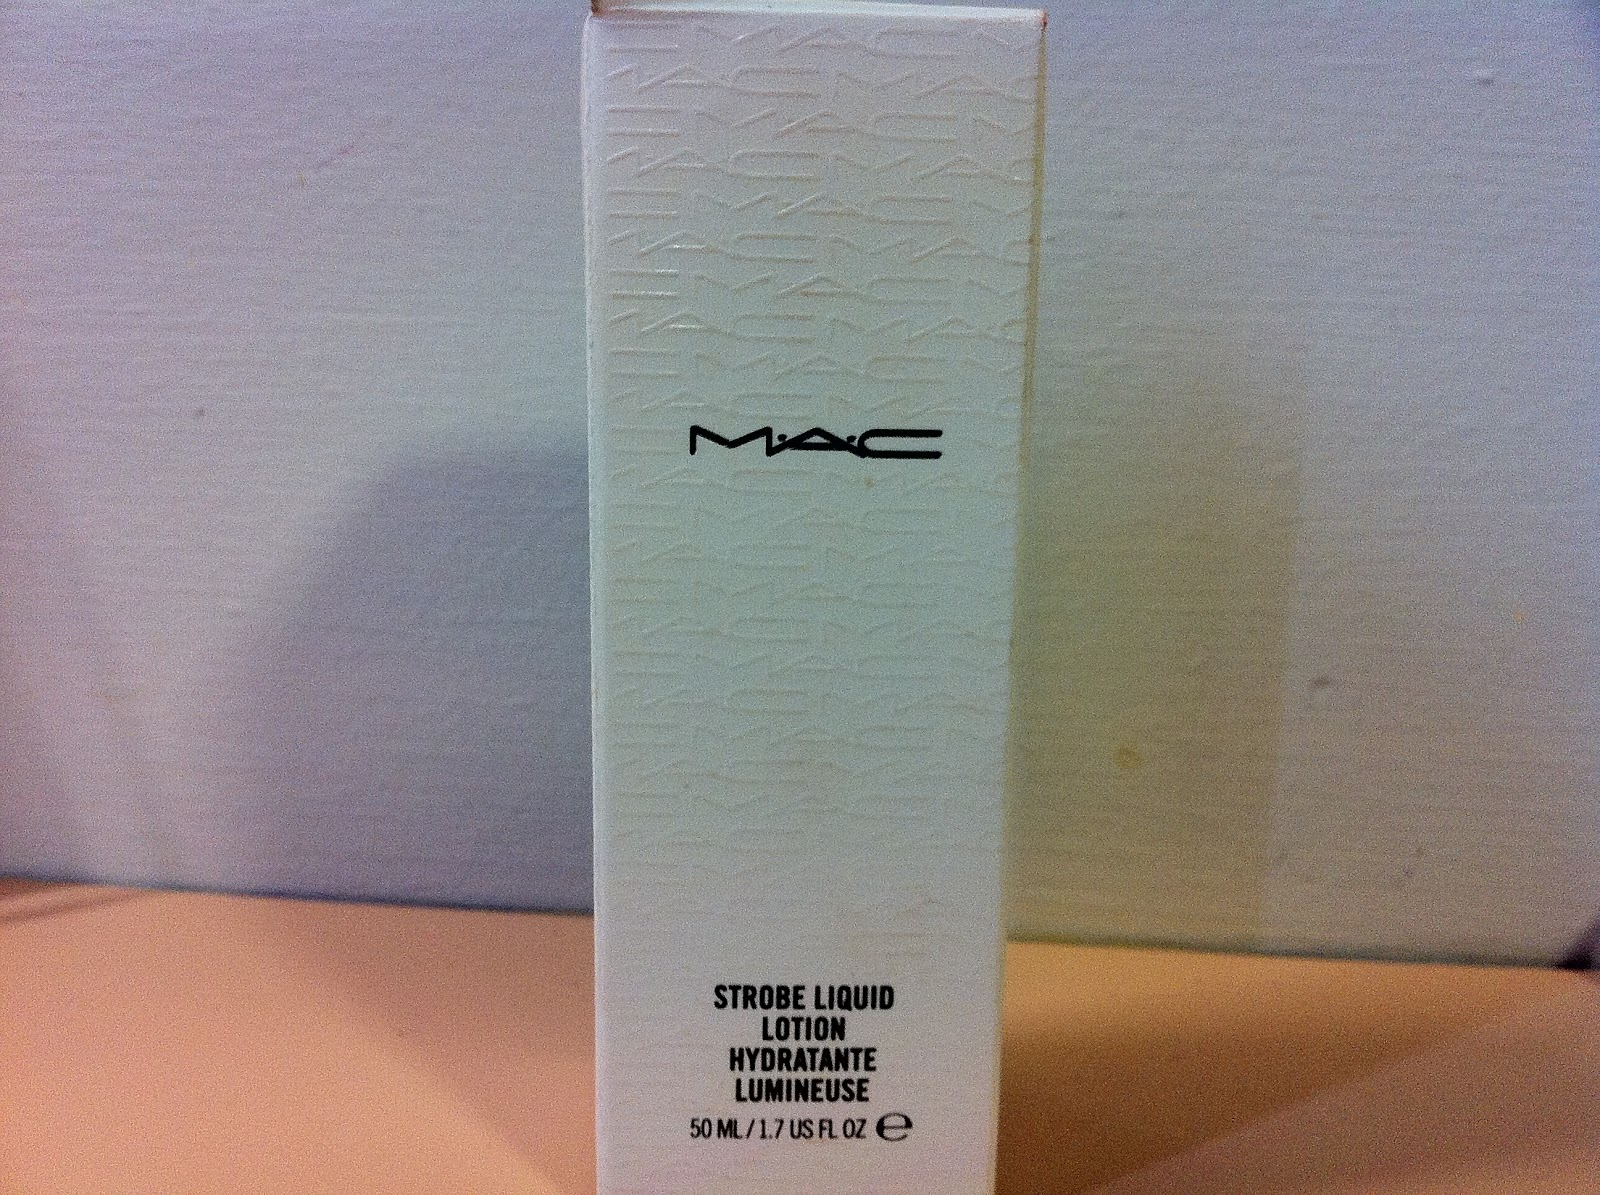 MAC Strobe Liquid Lotion